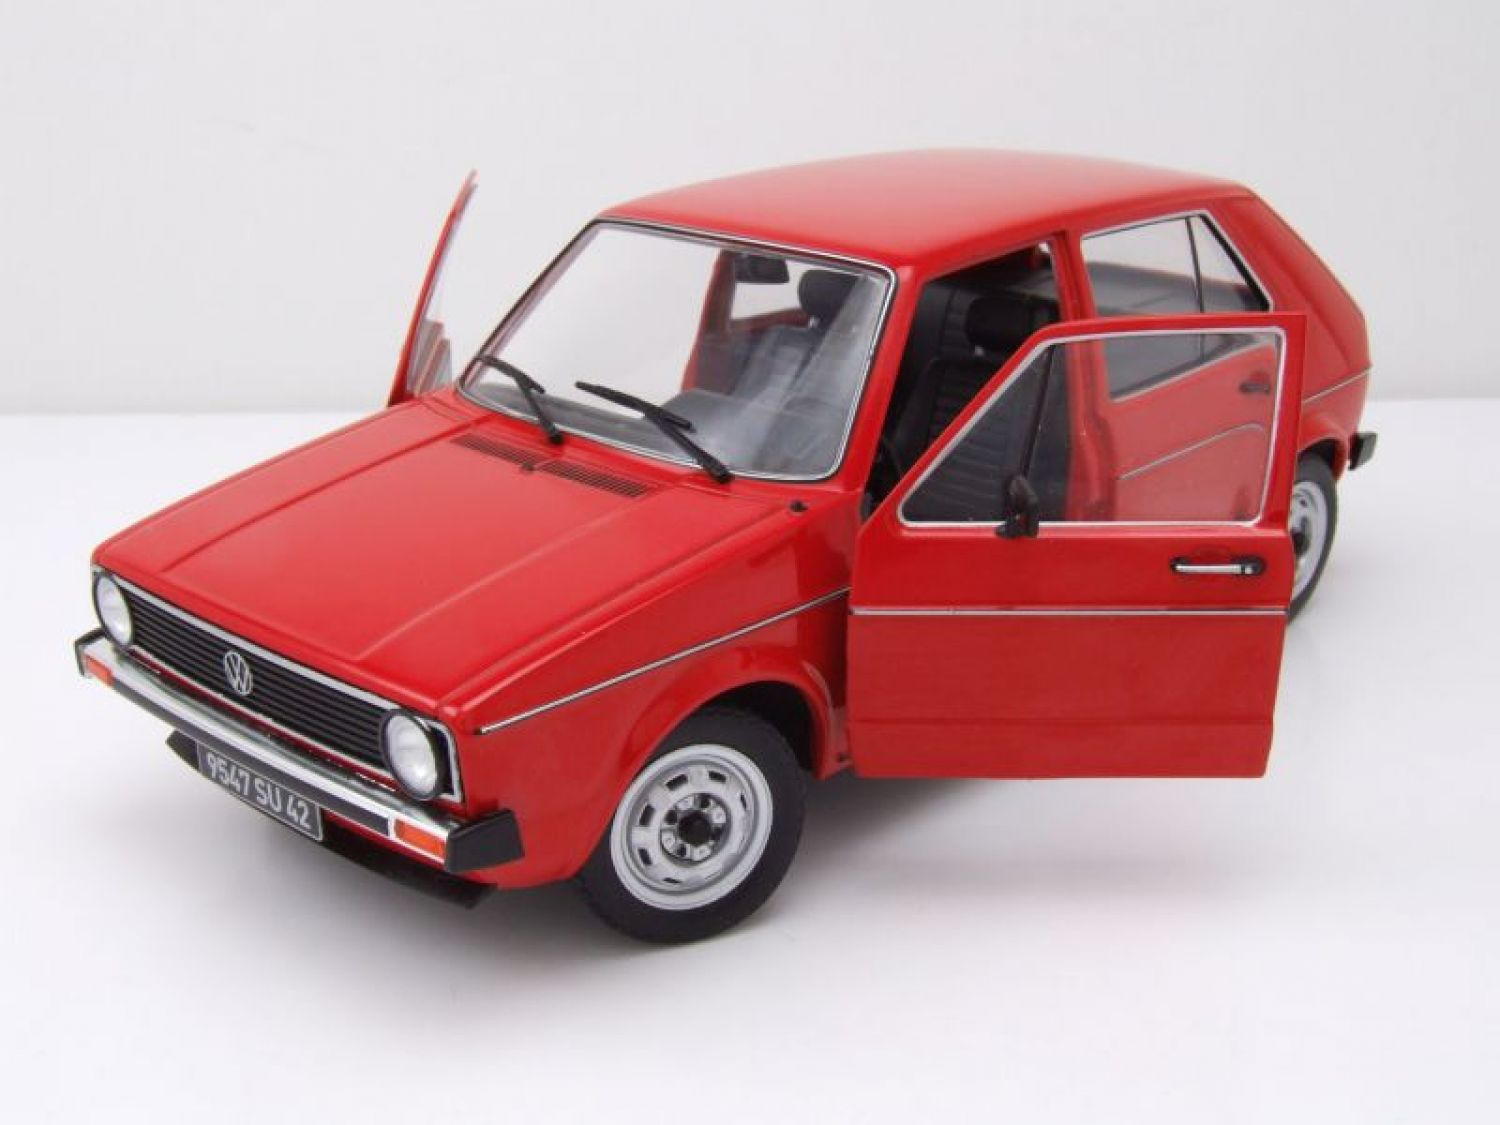 vw golf 1 l rot modellauto 1 18 solido ebay. Black Bedroom Furniture Sets. Home Design Ideas